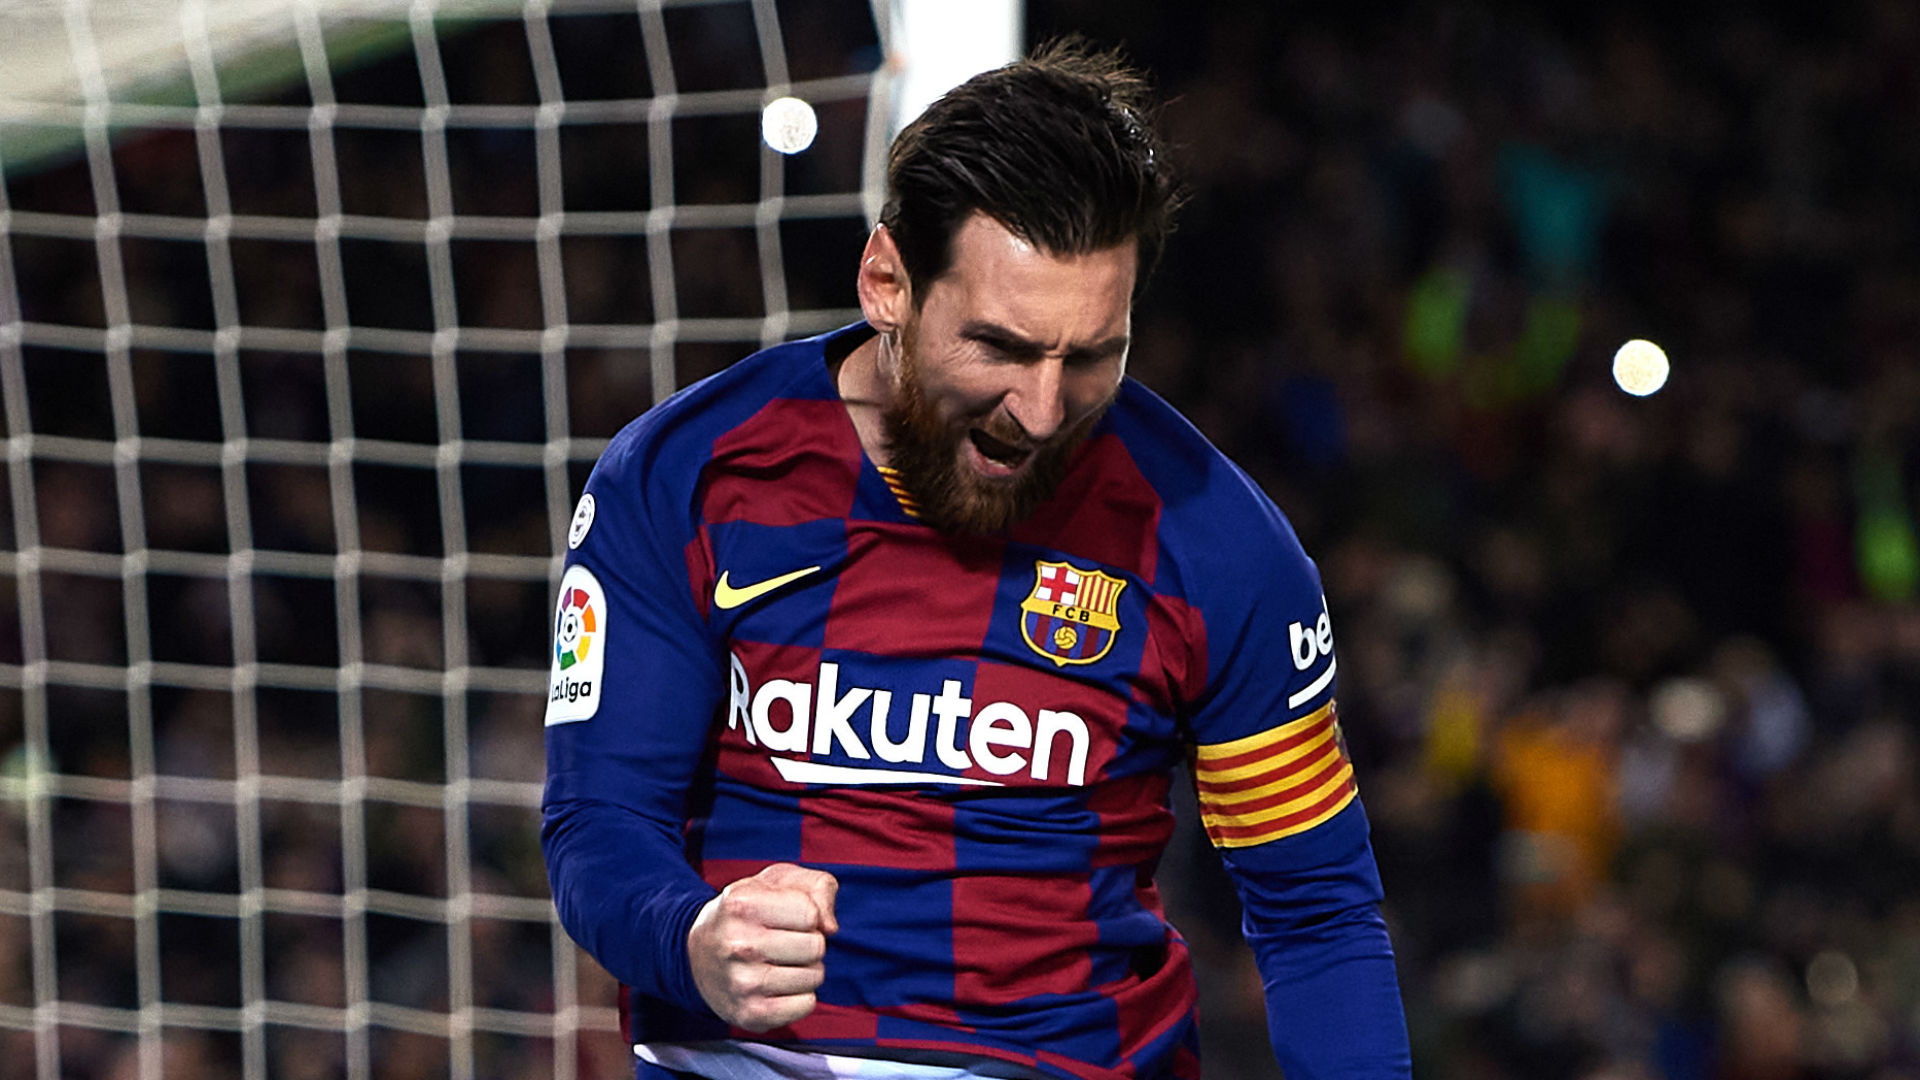 Messi is the greatest player ever, Ronaldinho among best – Xavi